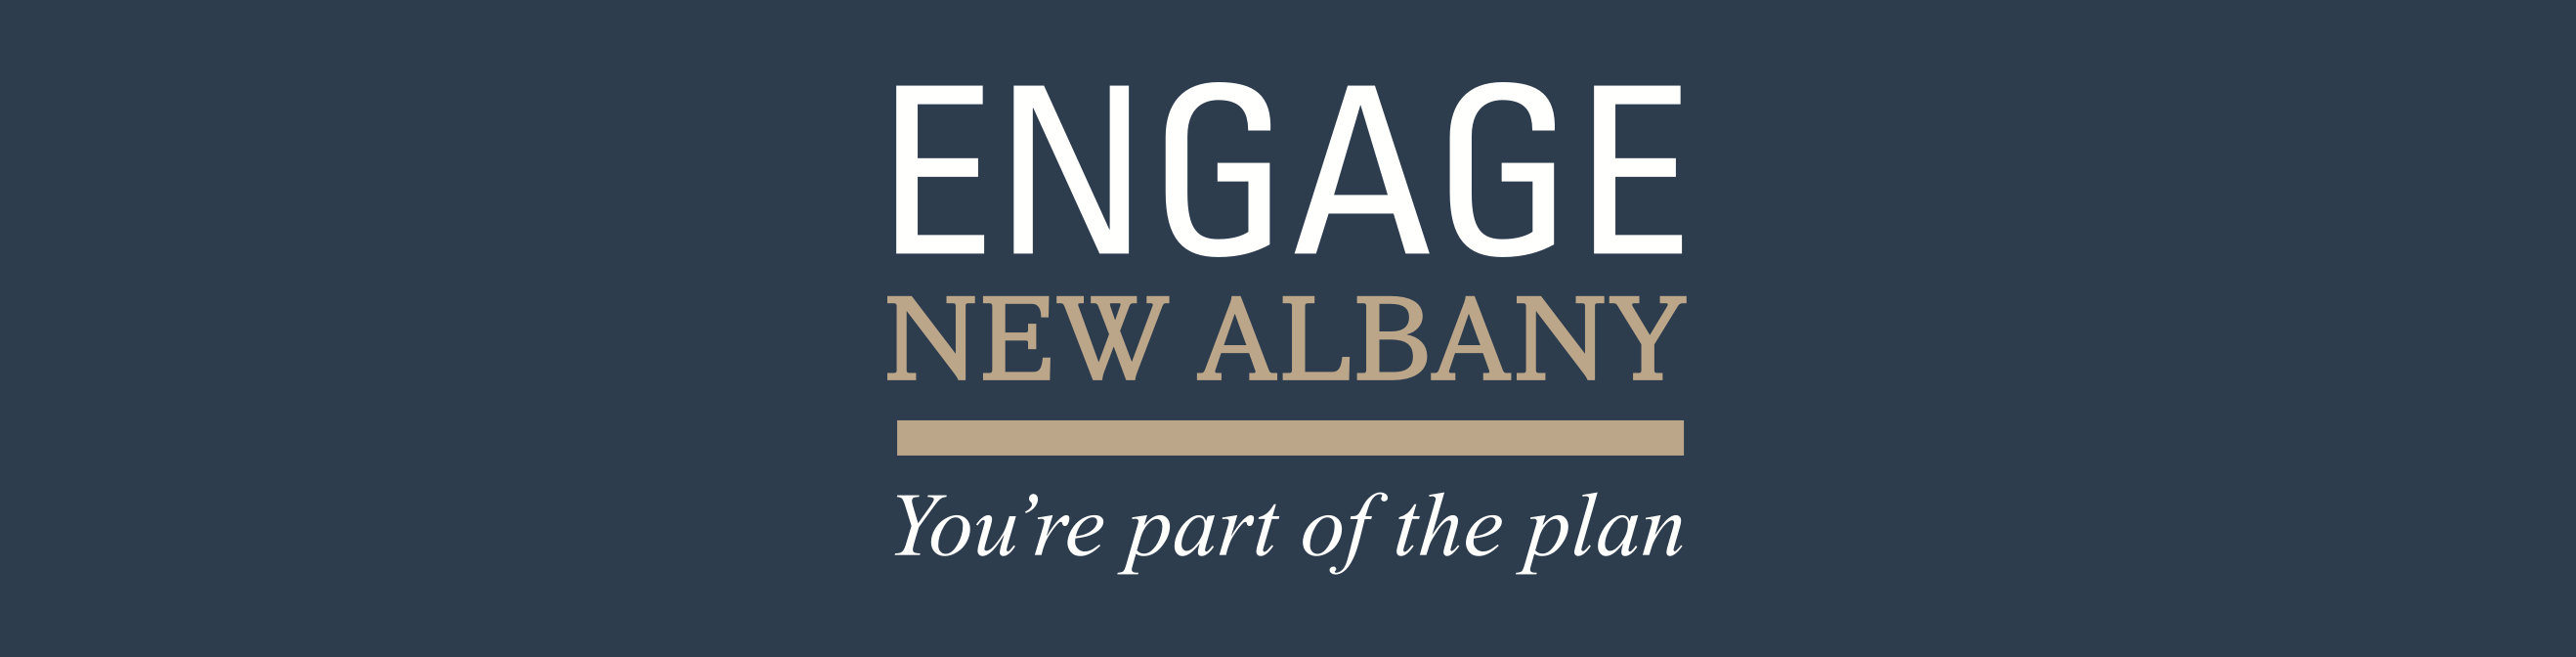 Engage New Albany